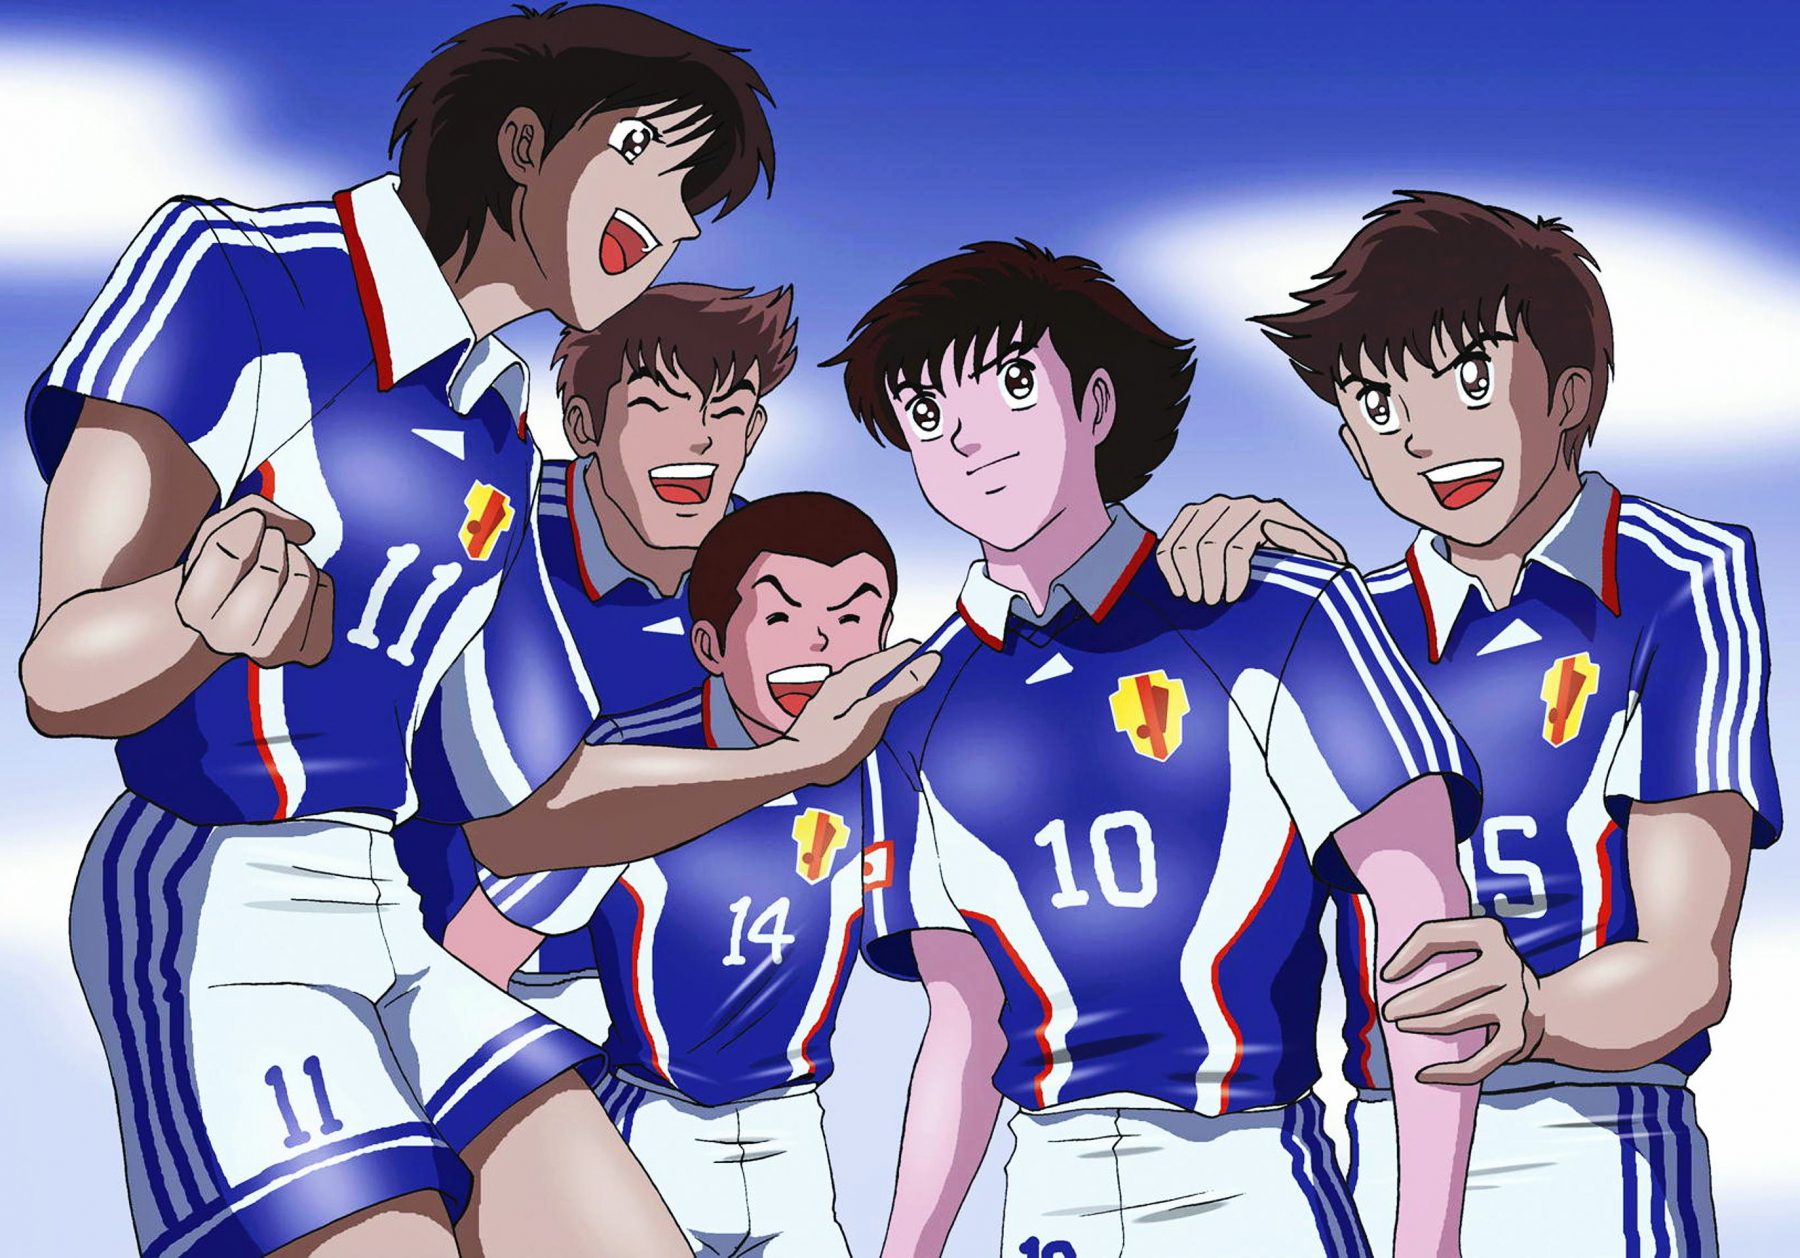 Captain Tsubasa The Anime Star Who Changed The Face Of